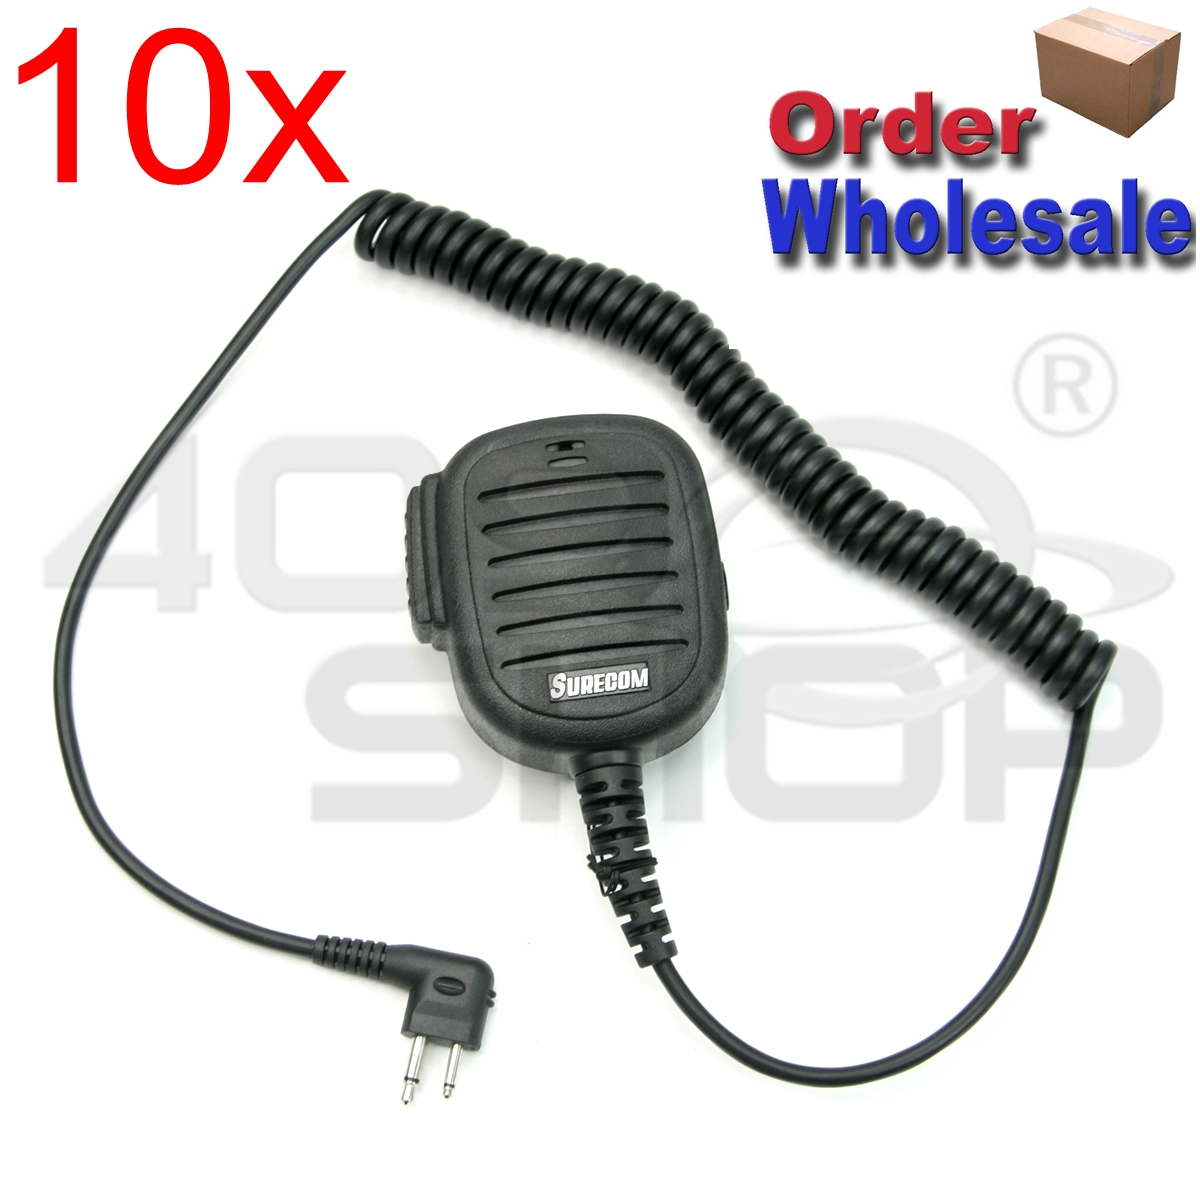 10x SURECOM Speaker Mic FOR MOTOROLA T450LS ECP100 GP68